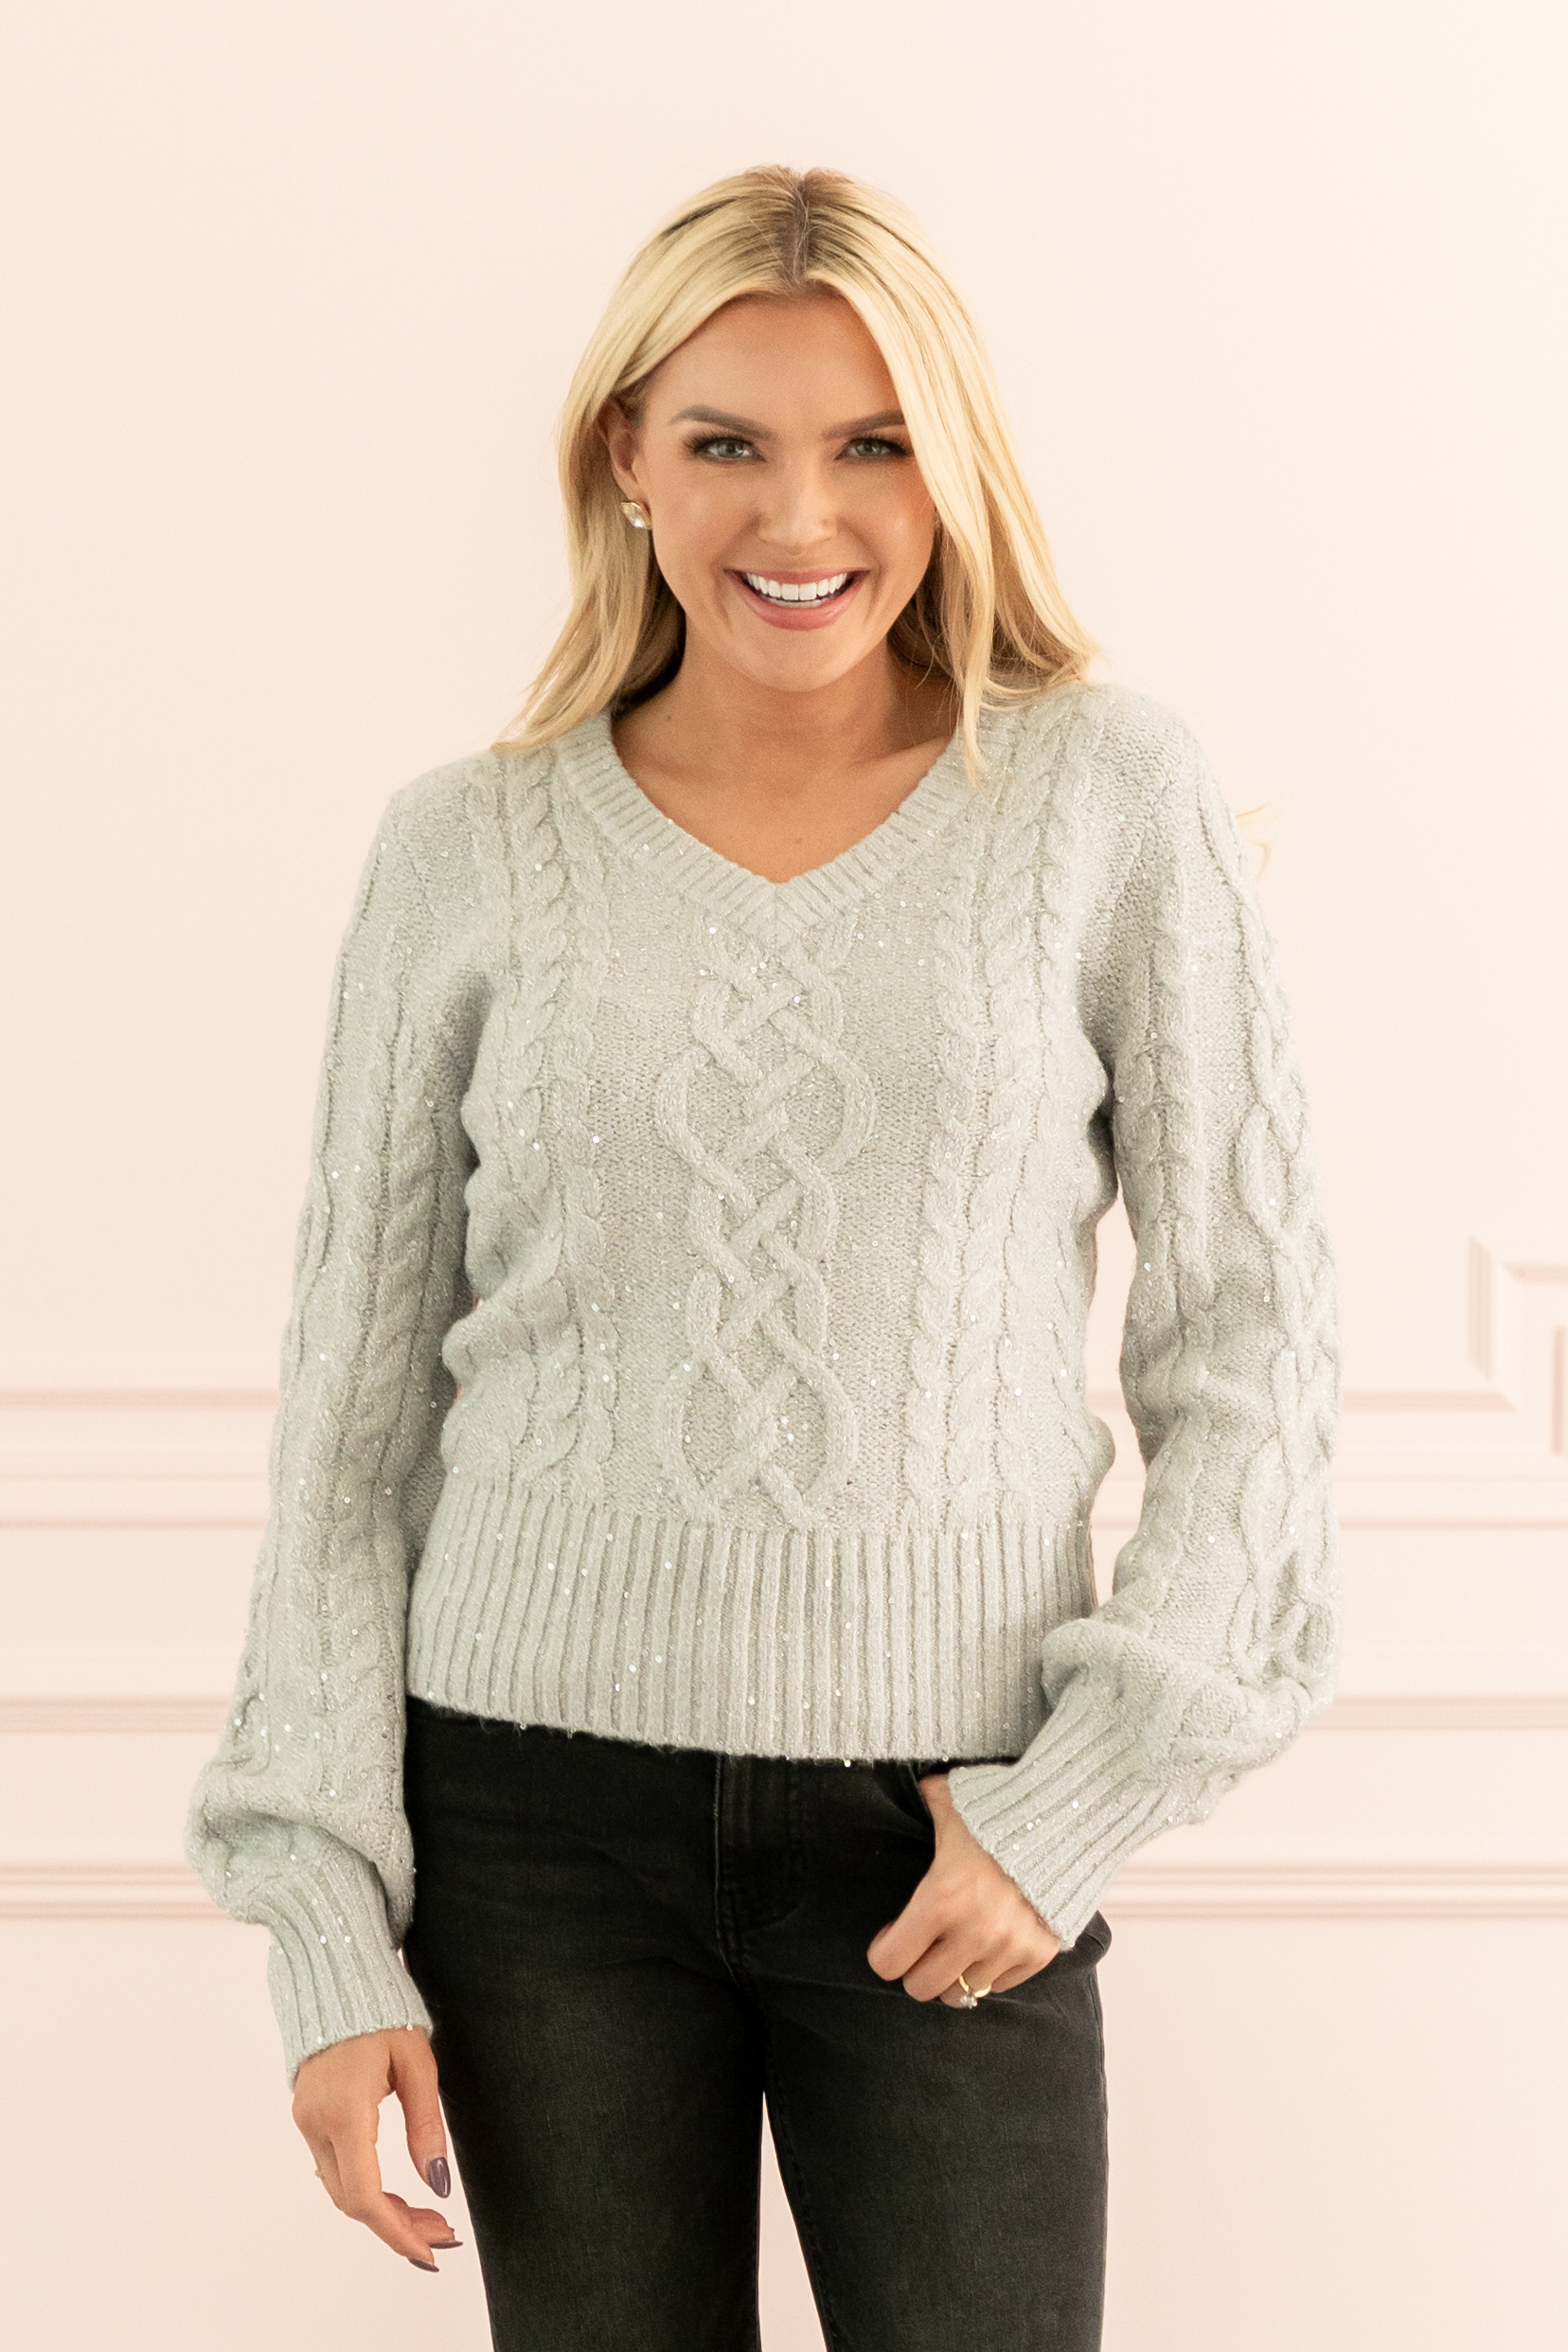 The Rachel Parcell Winter Collection Is Here Rach Parcell